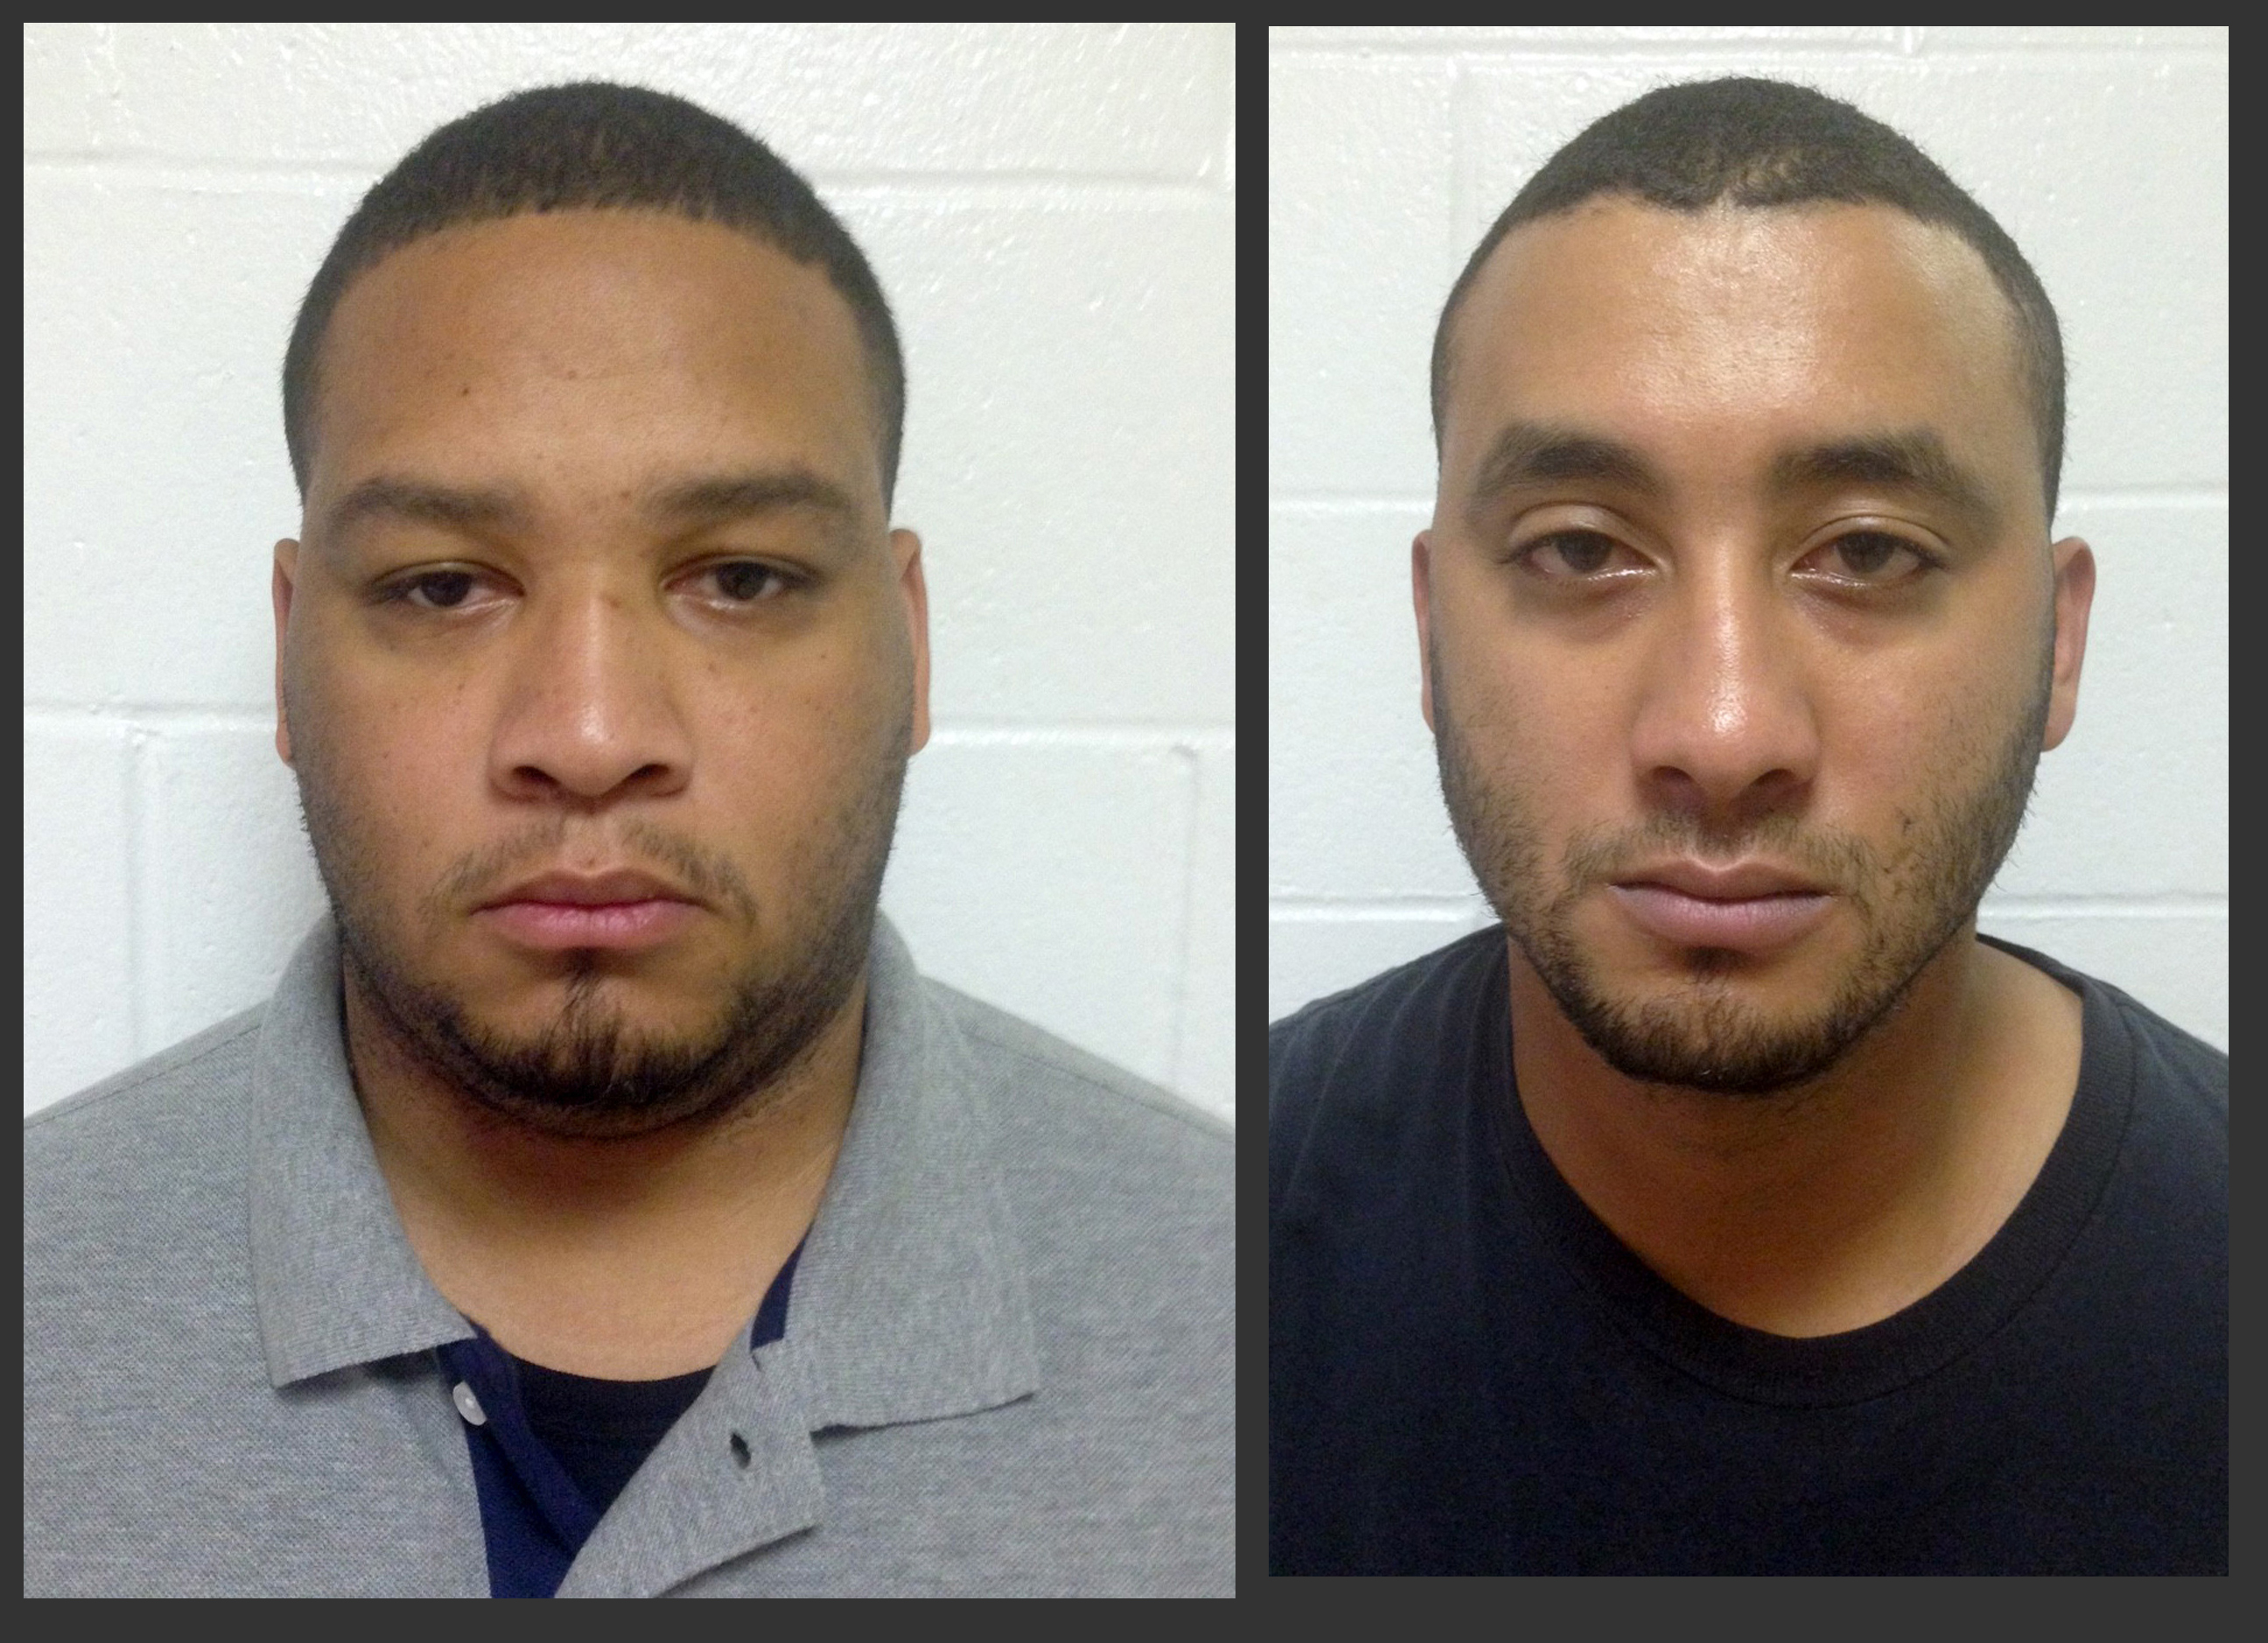 Marksville City Marshal Derrick Stafford, left, and Marksville City Marshal Norris Greenhouse Jr. were arrested on charges of second-degree murder and attempted second-degree murder in the Nov. 3, 2015 in Marksville, La.